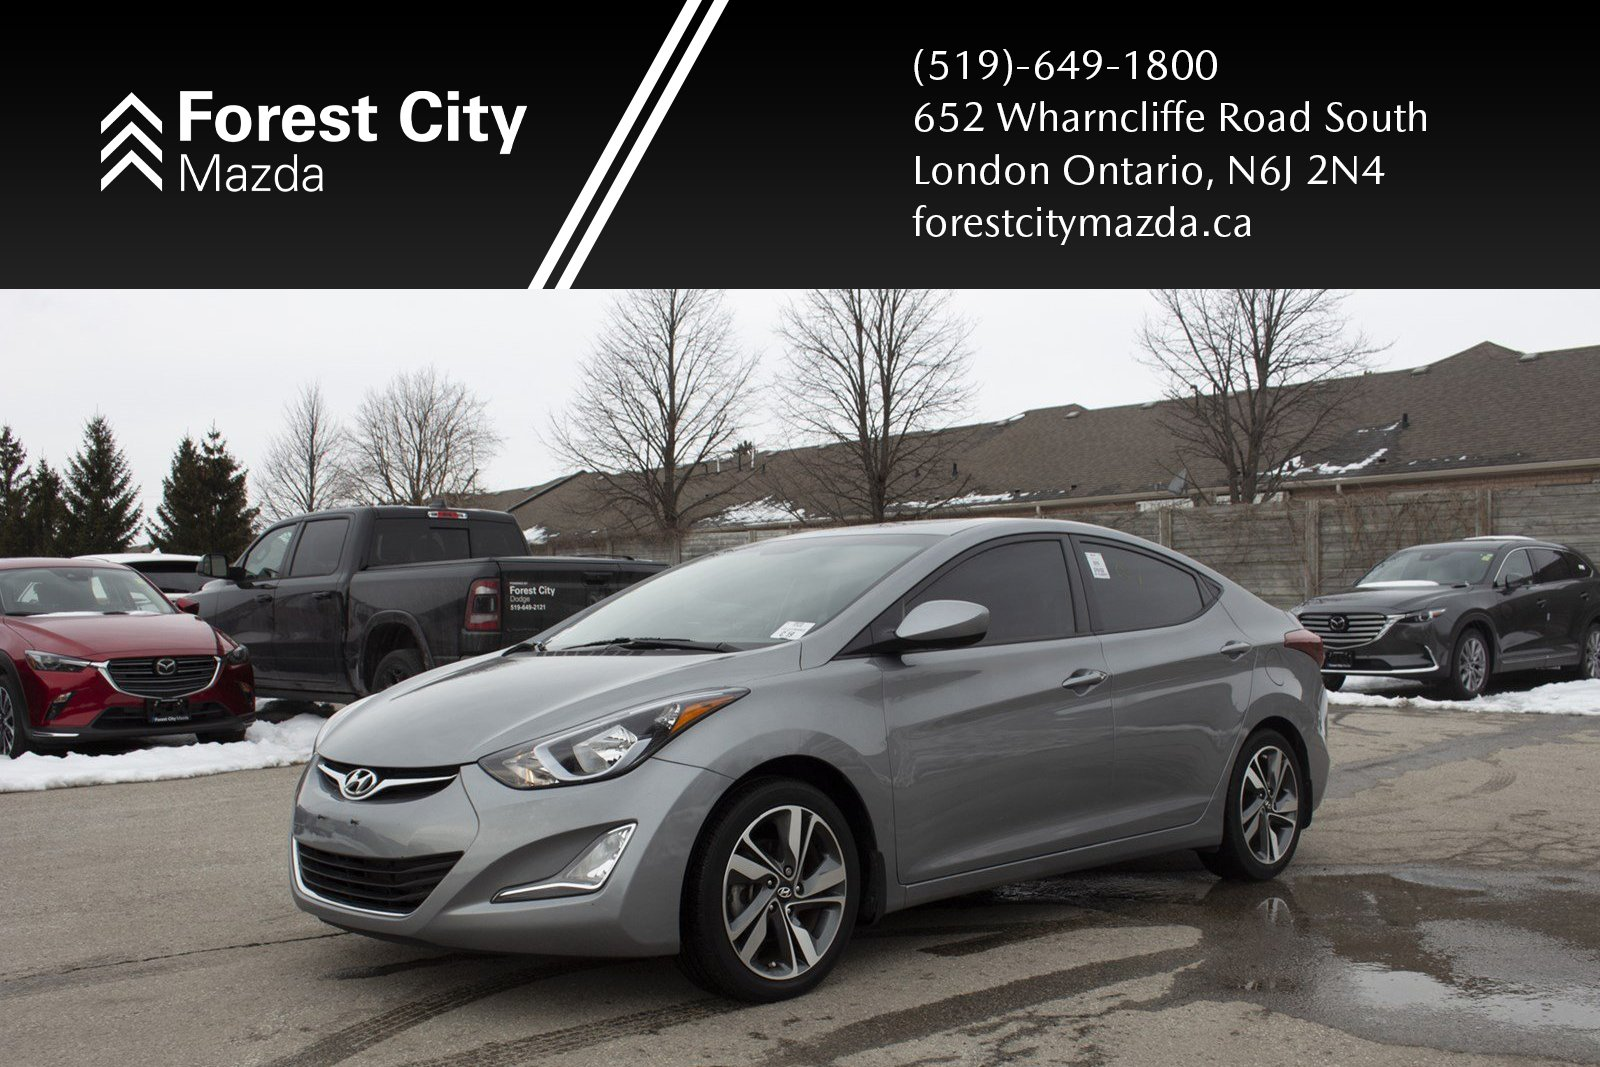 Pre-Owned 2015 Hyundai Elantra GLS, AUTOMATIC,HEATED SEATS,ALLOYS,POWER MOONROOF